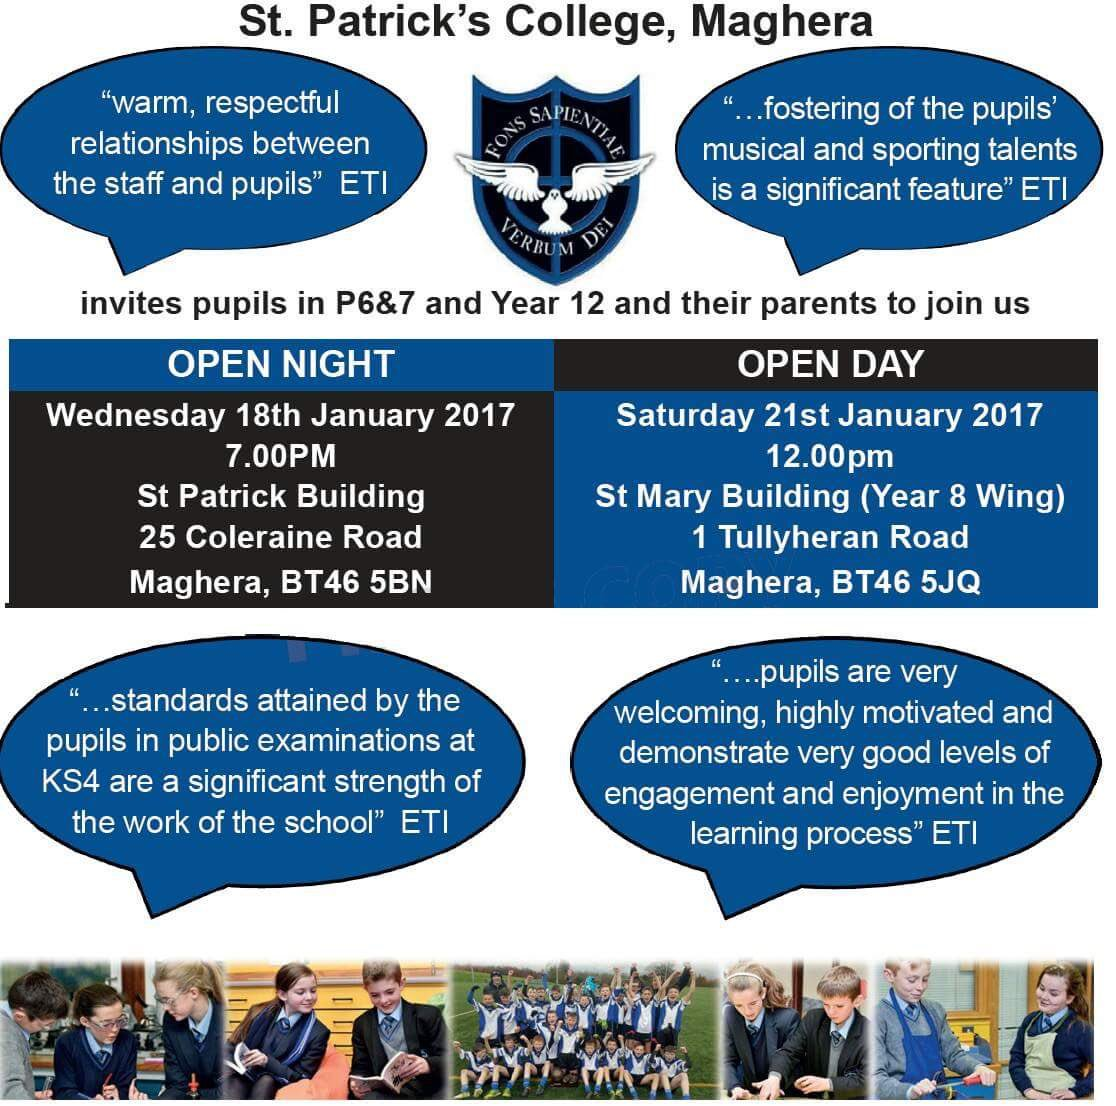 st patricks college St patrick's - london college with a 200-year history - offers programmes in business management, health, travel & tourism, and more.